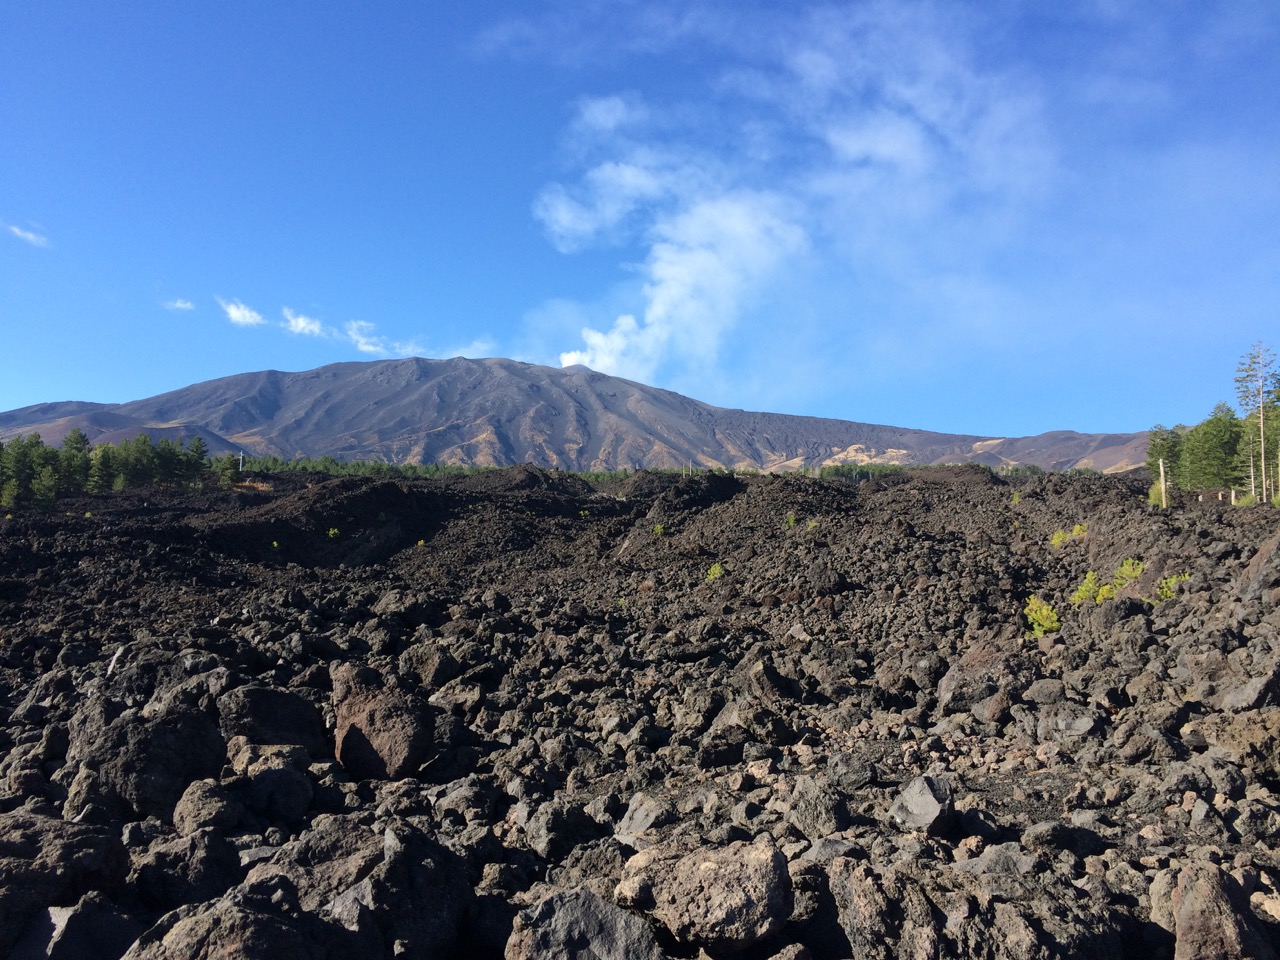 View of Etna from the North side with lava flow in foreground